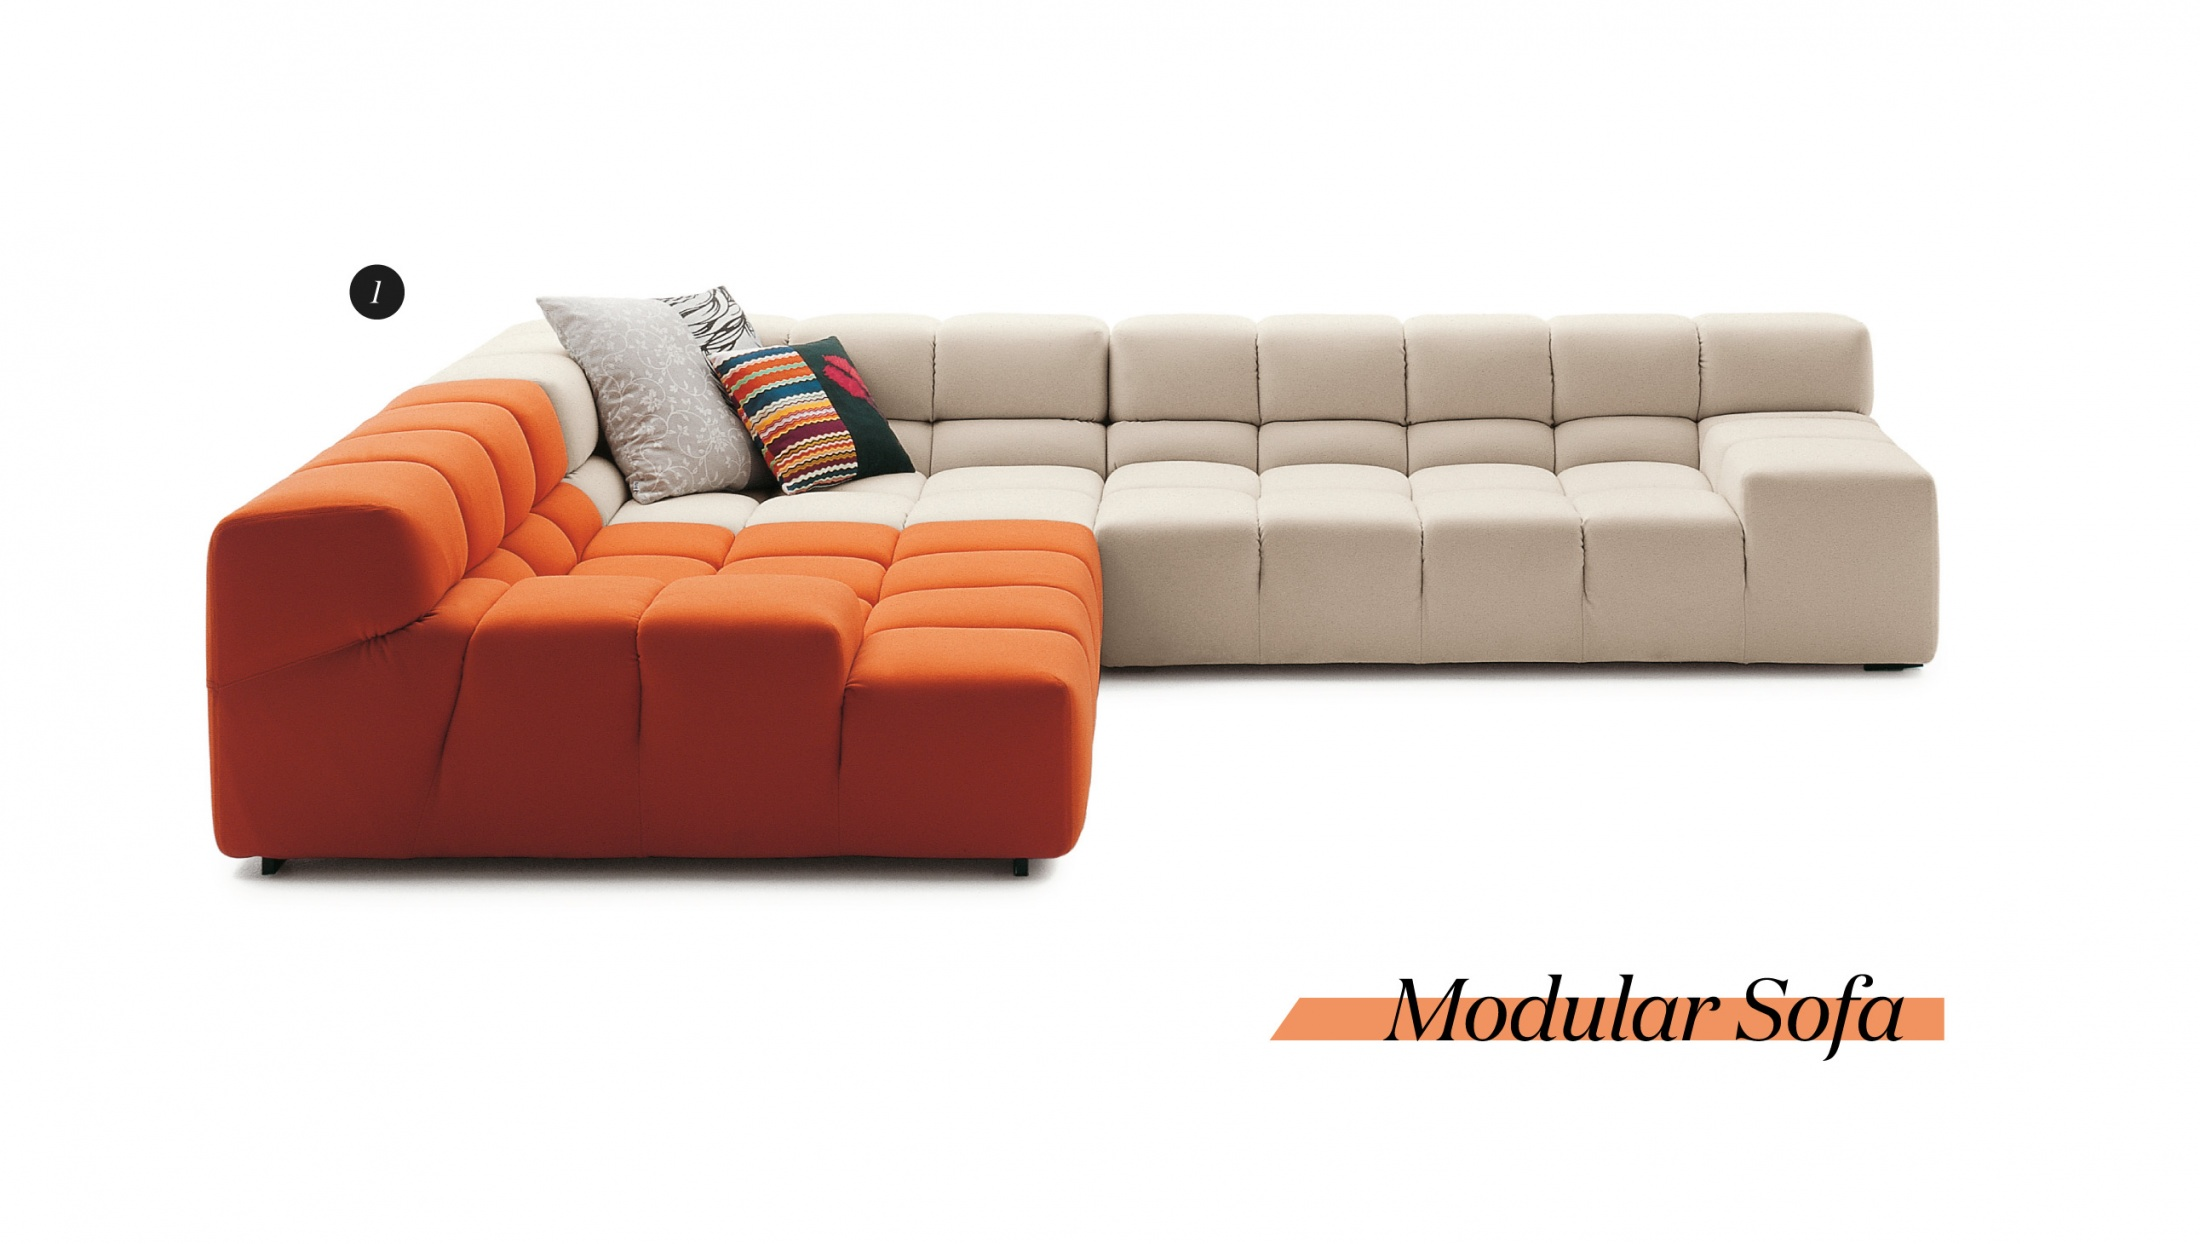 Designed by norm architects its both homey and architectural at the same time the modular sofa